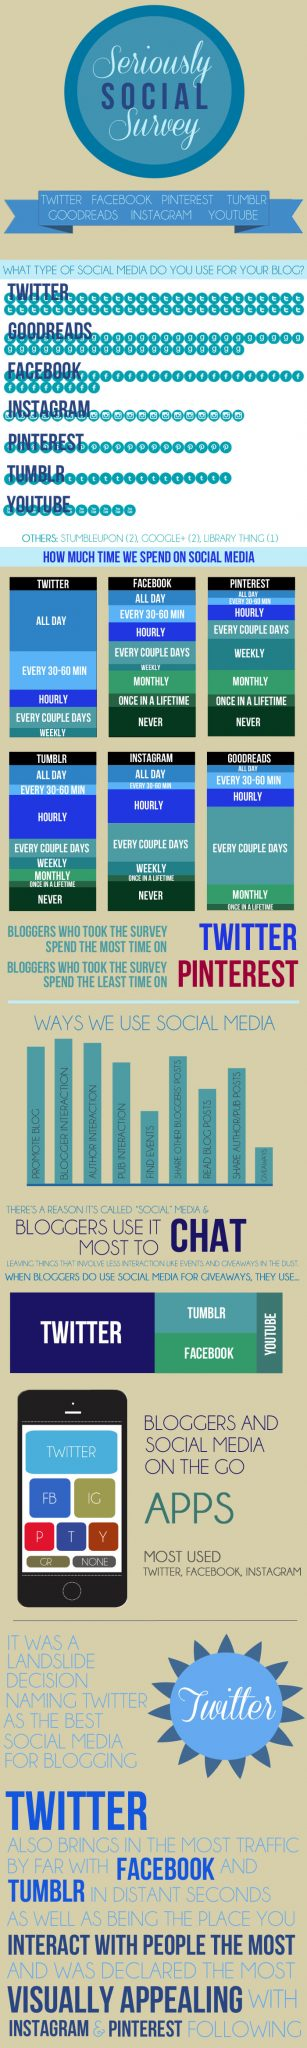 Social Media Infographic Survey